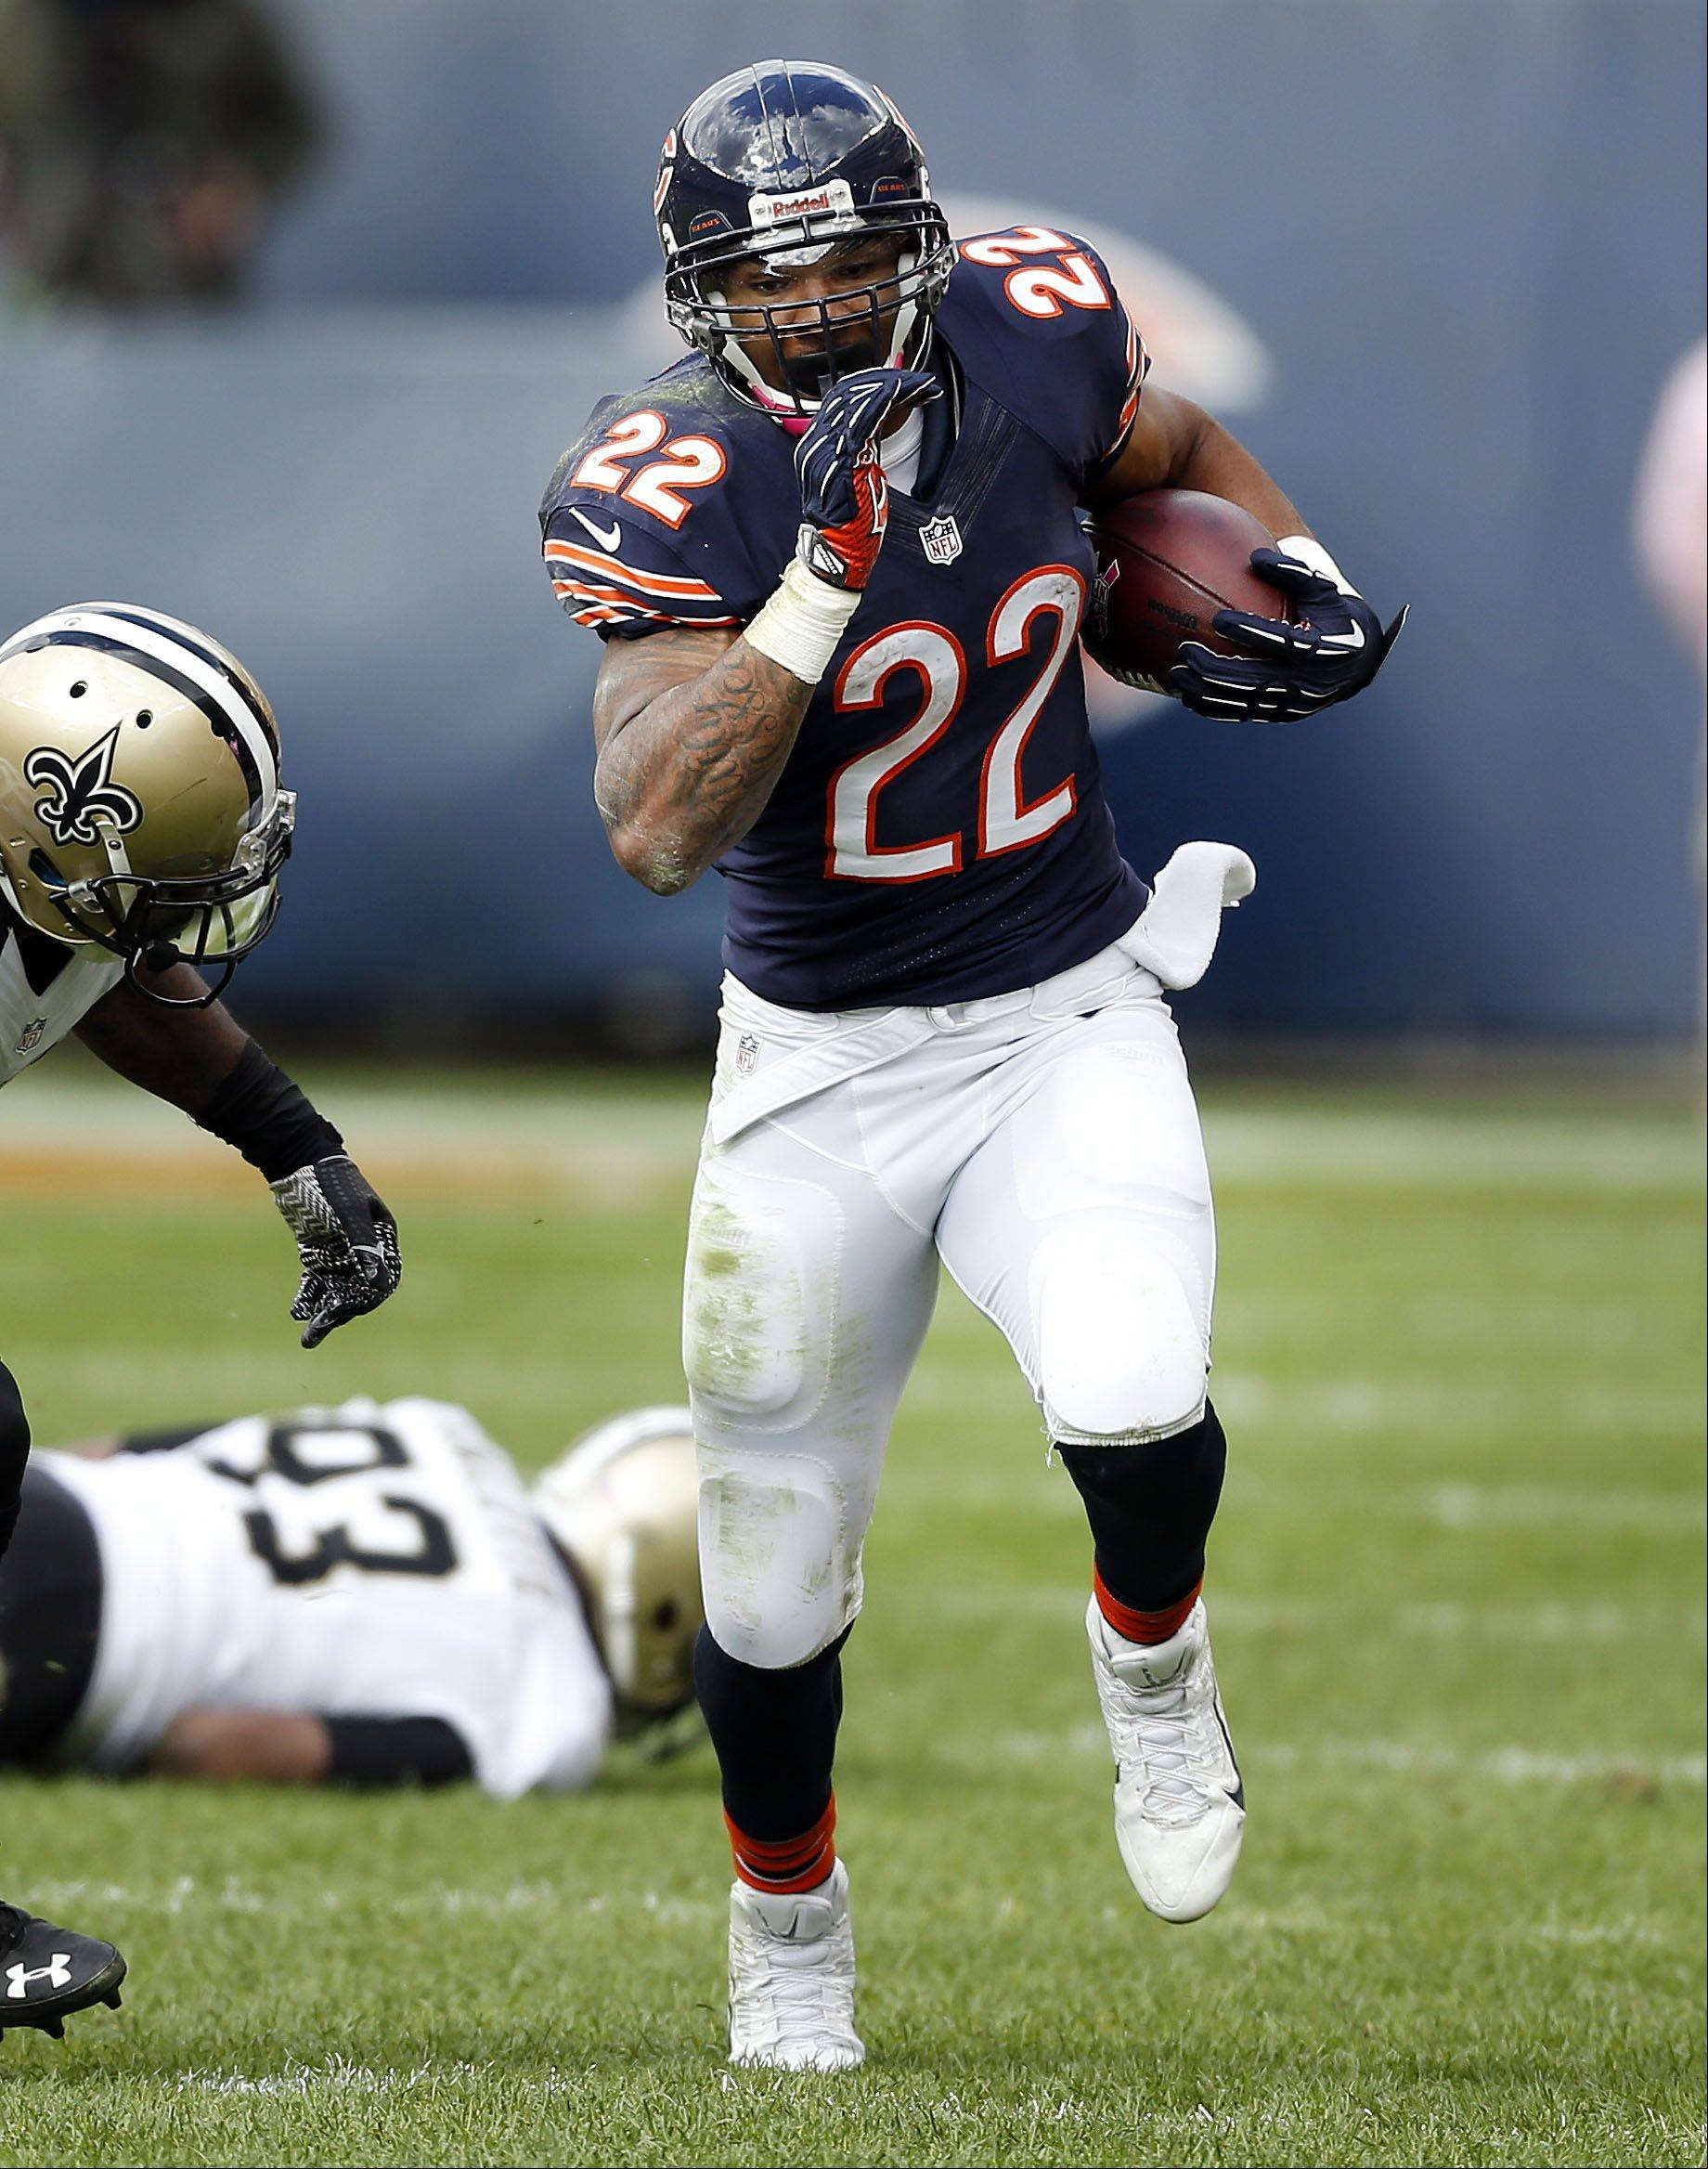 The perception that the new Bears offense operates at the expense of running back Matt Forte is no more than that: perception.